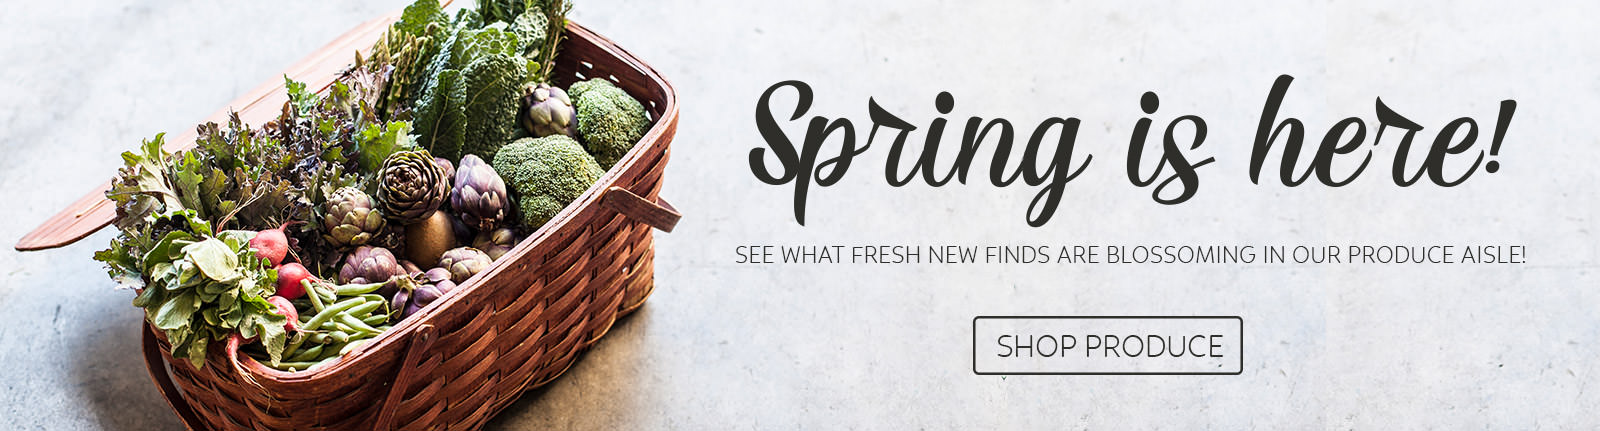 Spring is blooming at our produce aisle!